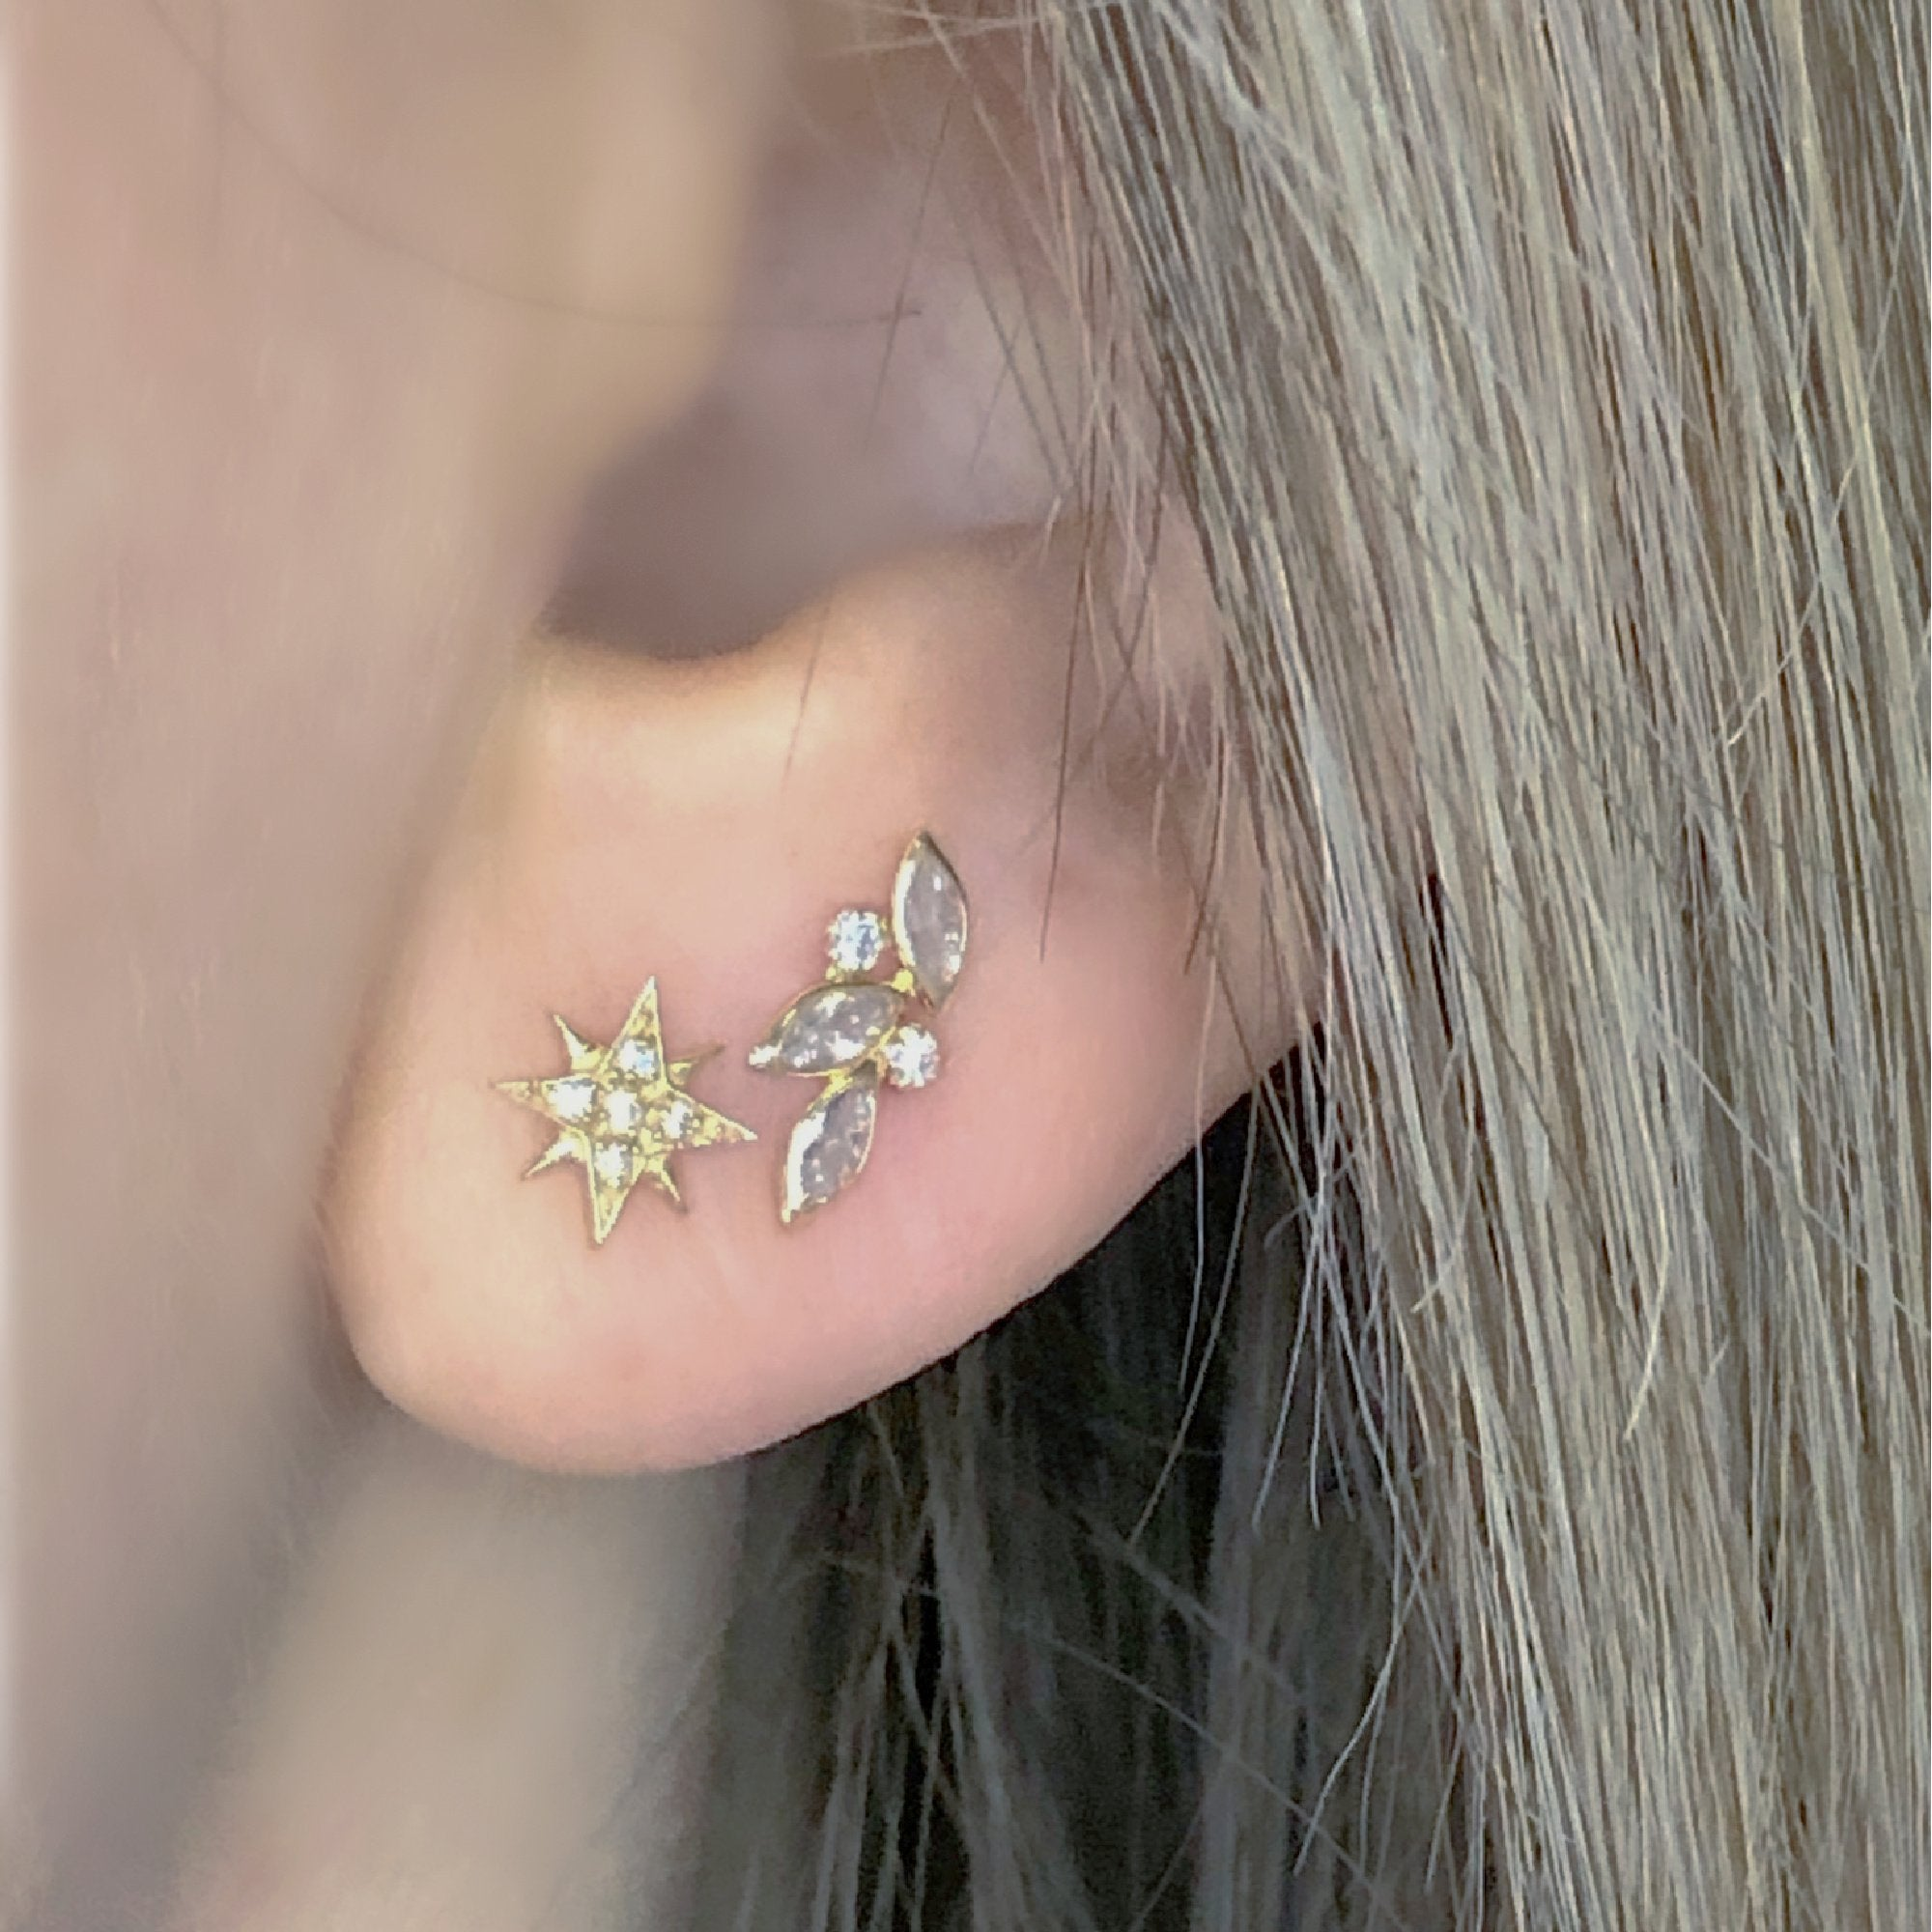 Abstract Stud Earrings on Ear | Push Back Earrings | Solid Gold Hypoallergenic Jewelry | Helix, Cartilage | Two of Most Fine Jewelry